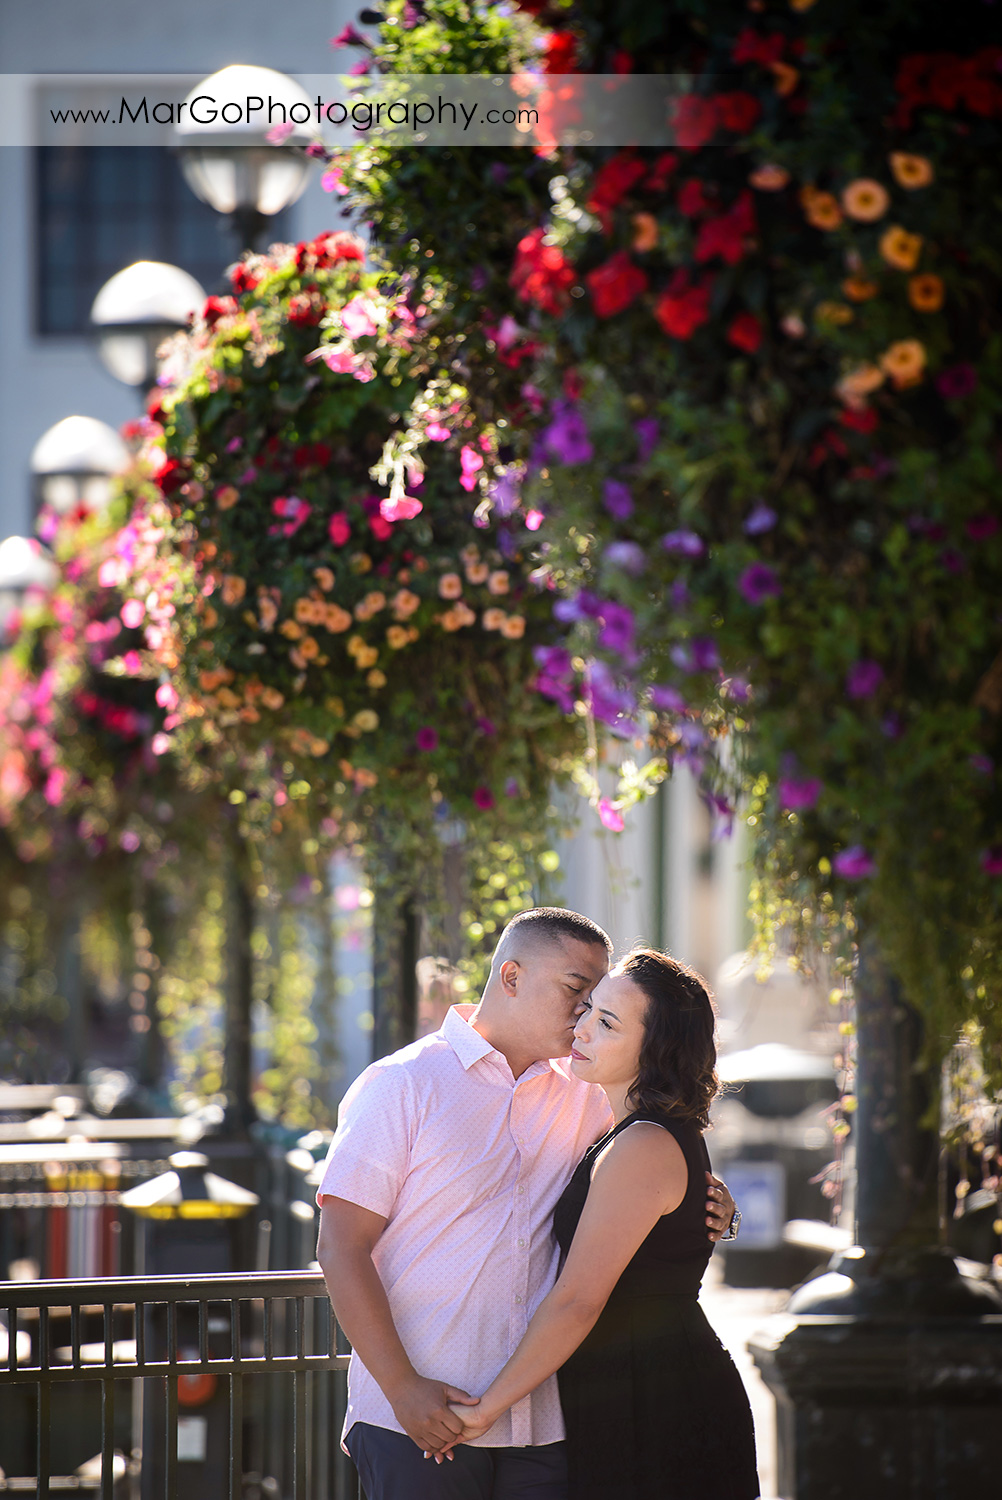 engagement session at Pier 5 in San Francisco - couple together